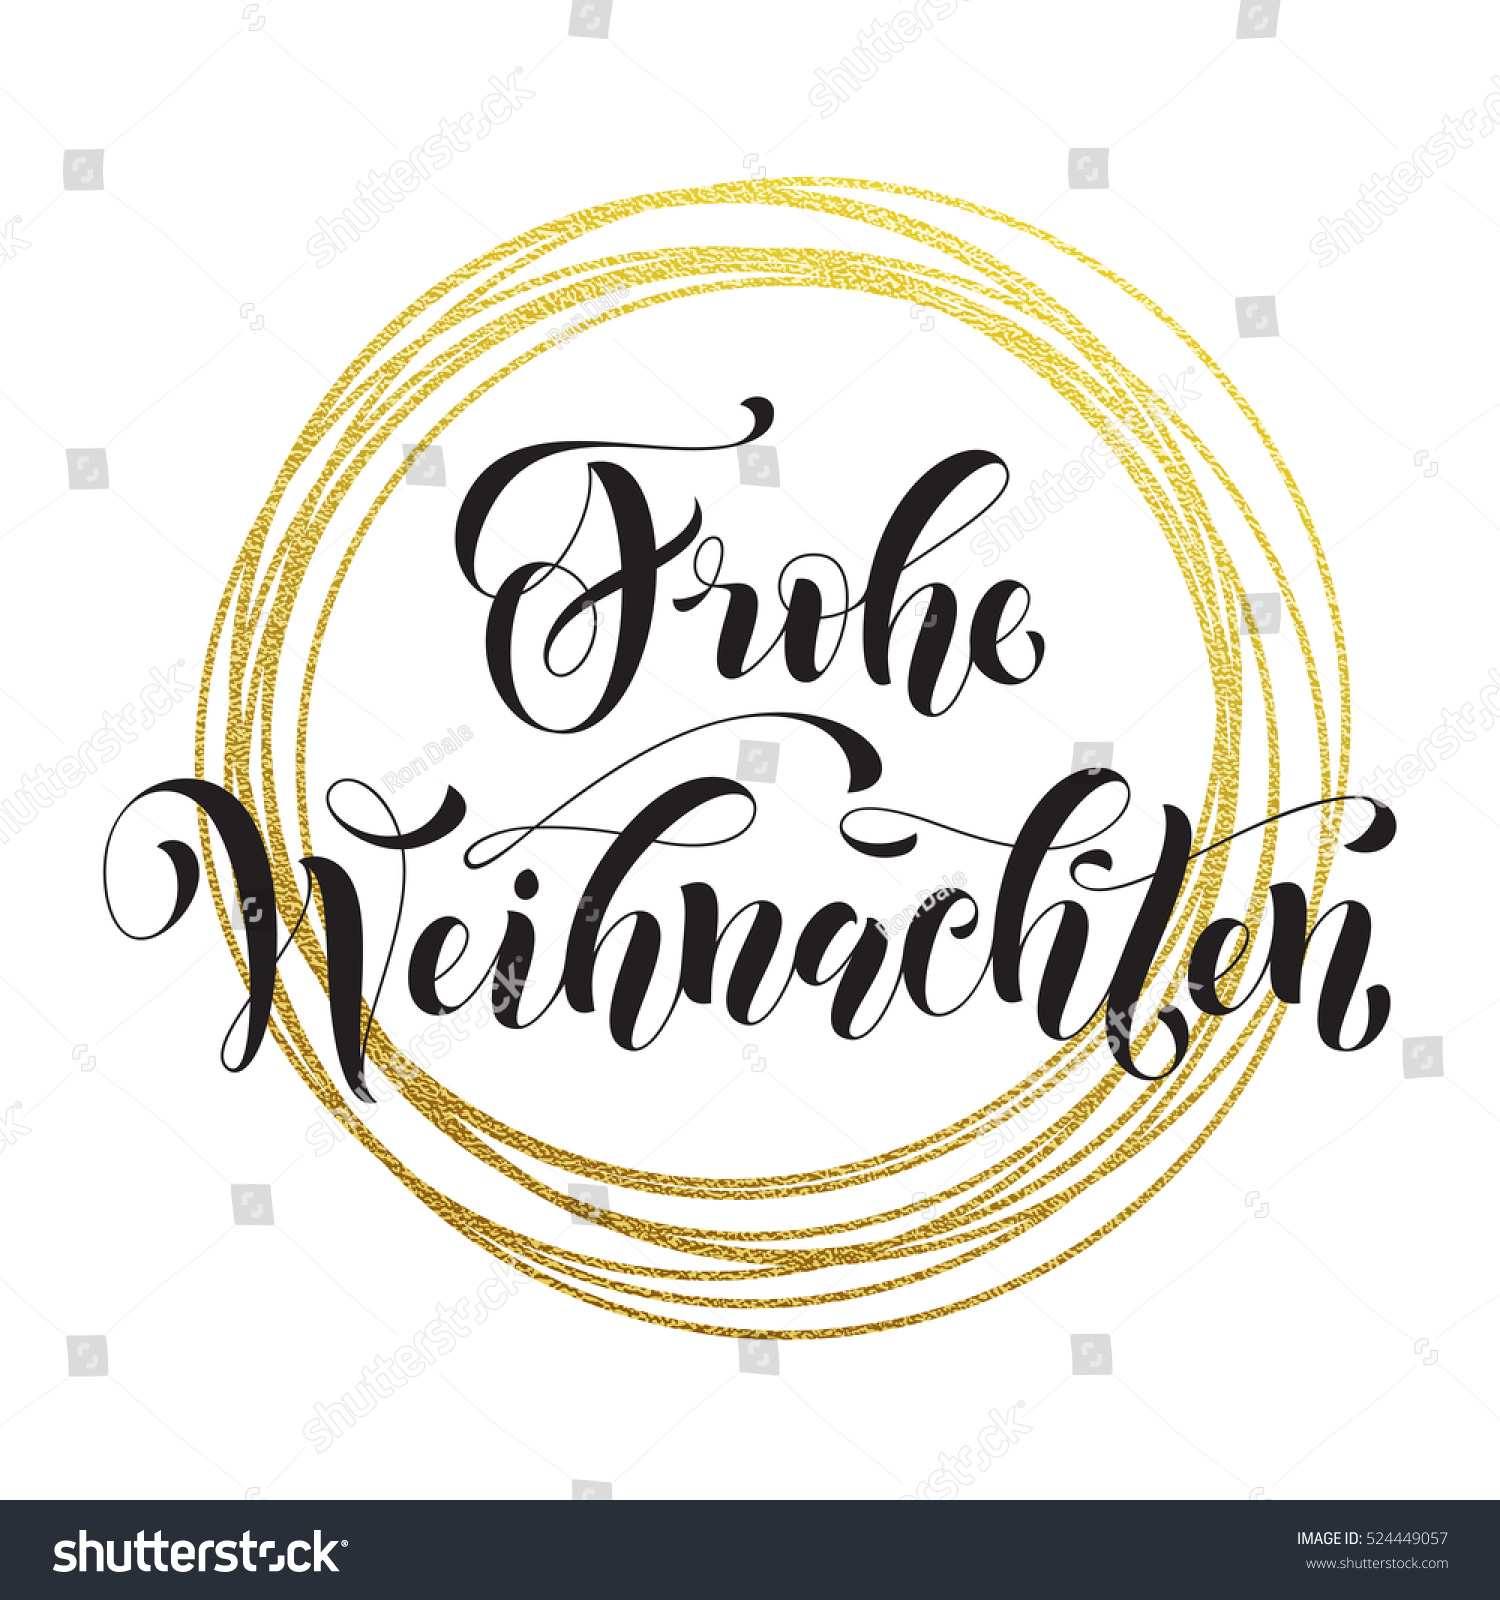 german merry christmas frohe weihnachten gold stock vector. Black Bedroom Furniture Sets. Home Design Ideas